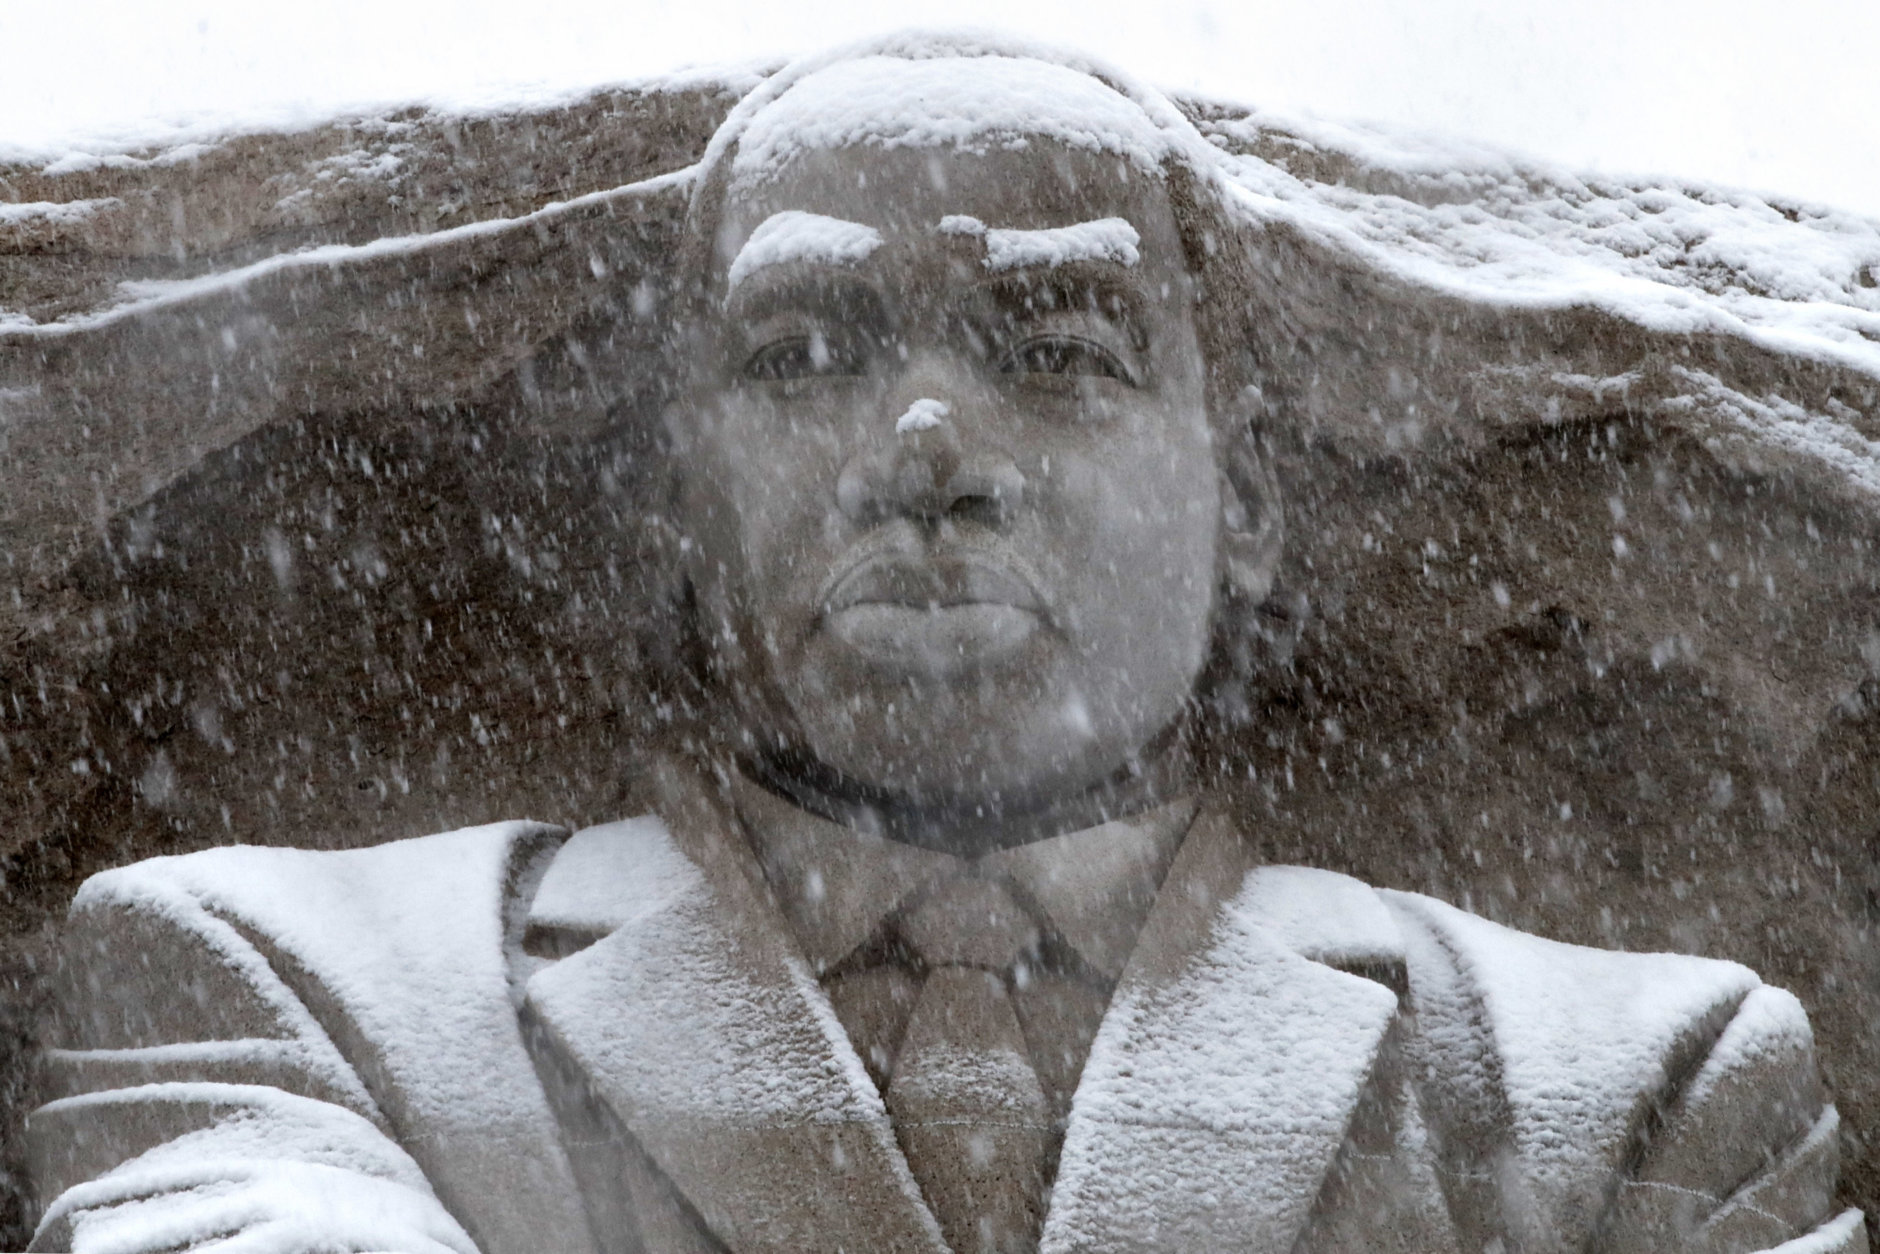 Snow falls on the Martin Luther King Jr., Memorial, Wednesday, March 21, 2018, in Washington, during a spring snow storm. (AP Photo/Jacquelyn Martin)